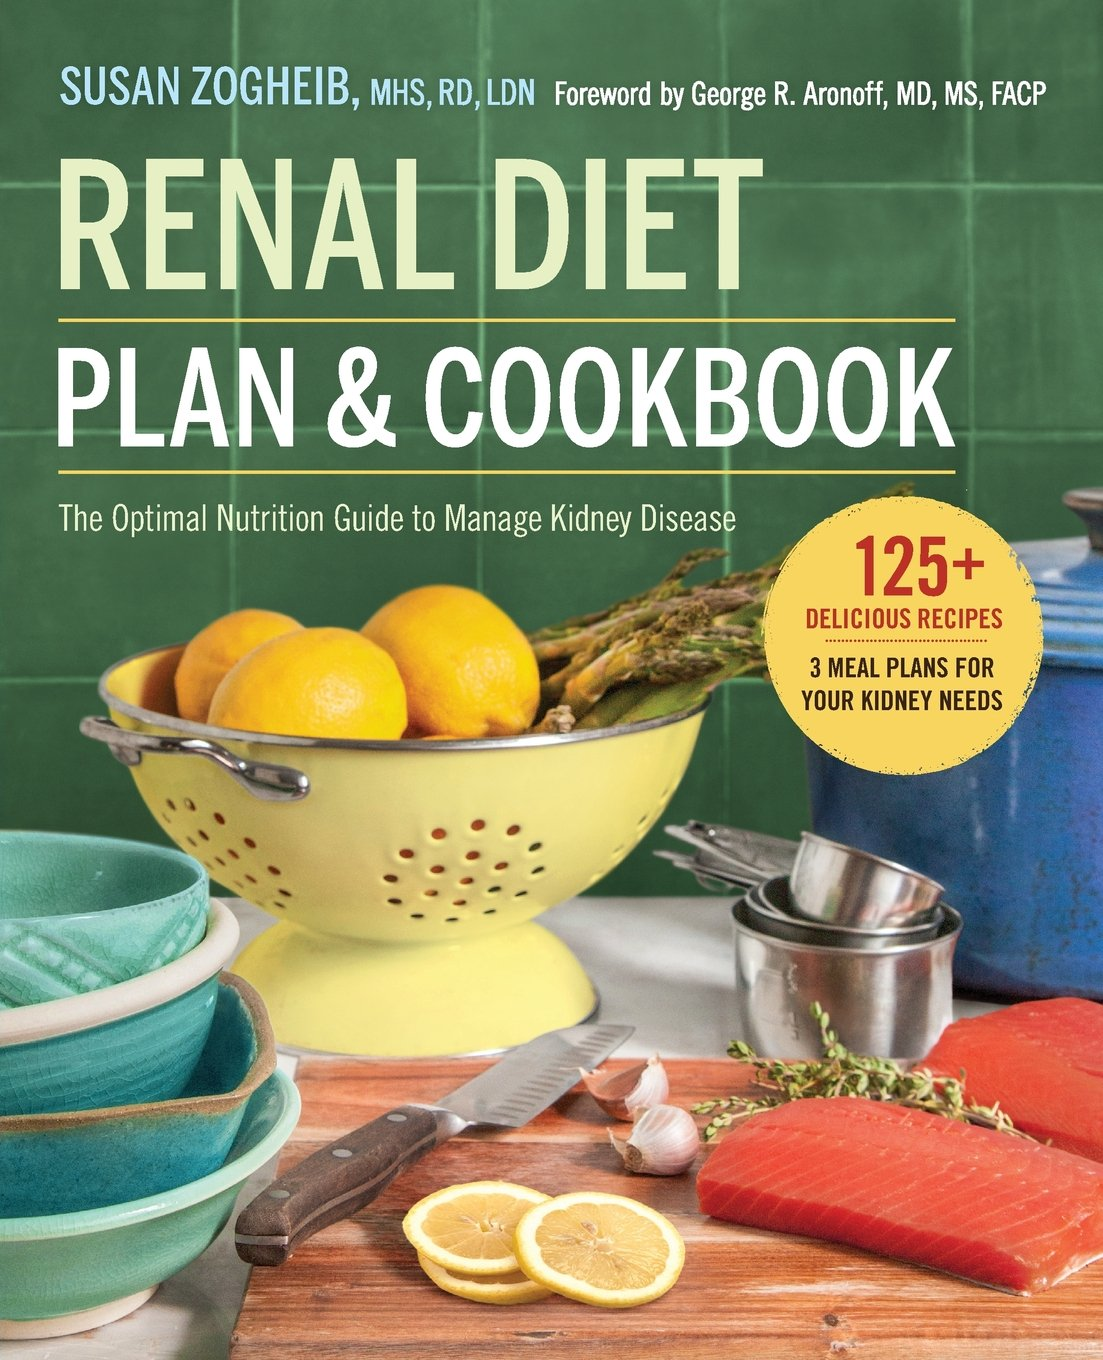 Renal diet plan and cookbook the optimal nutrition guide to manage renal diet plan and cookbook the optimal nutrition guide to manage kidney disease susan zogheib 9781623158699 amazon books forumfinder Image collections